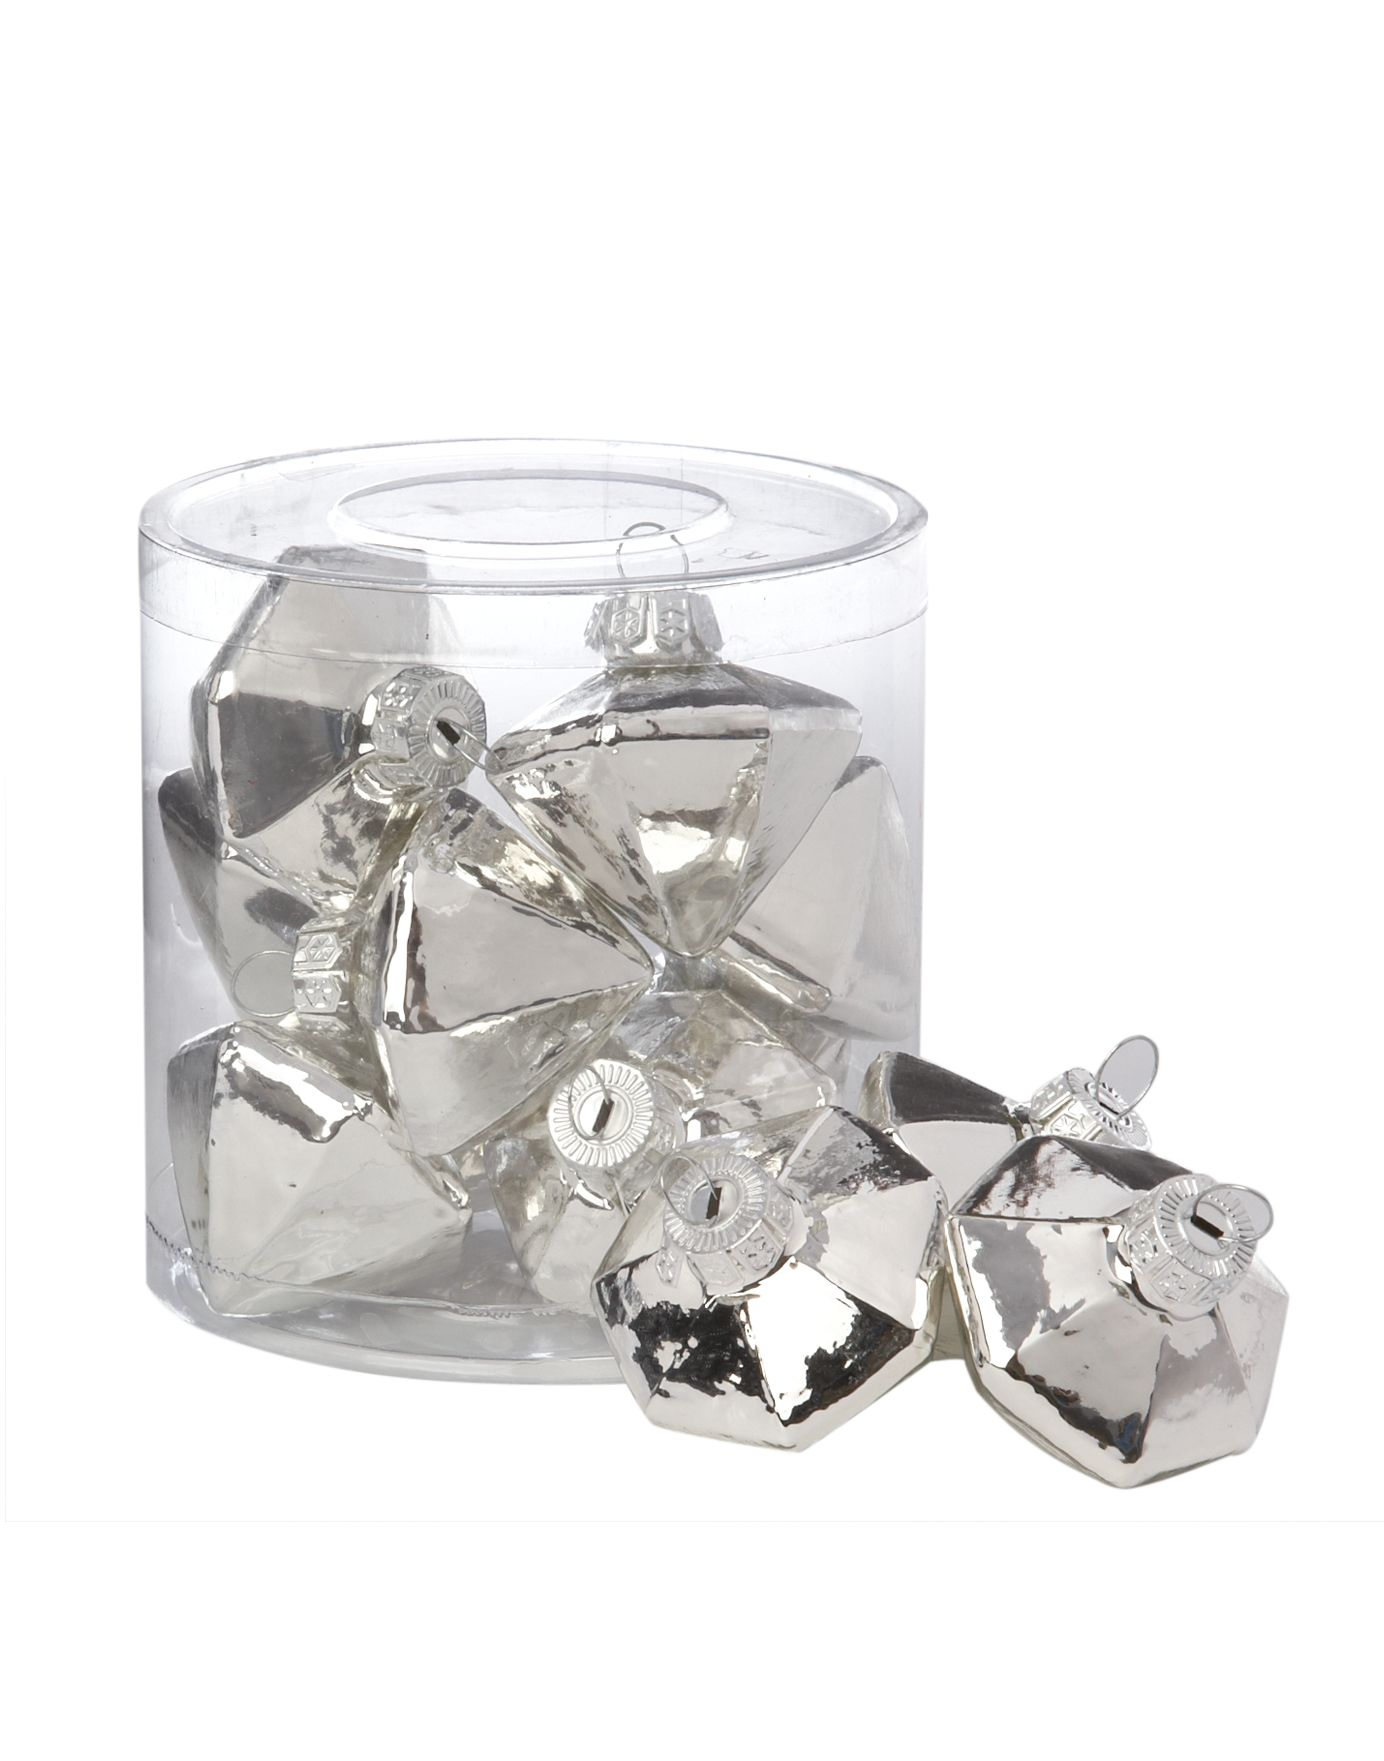 Eclipse 10 glass diamond shape decorations